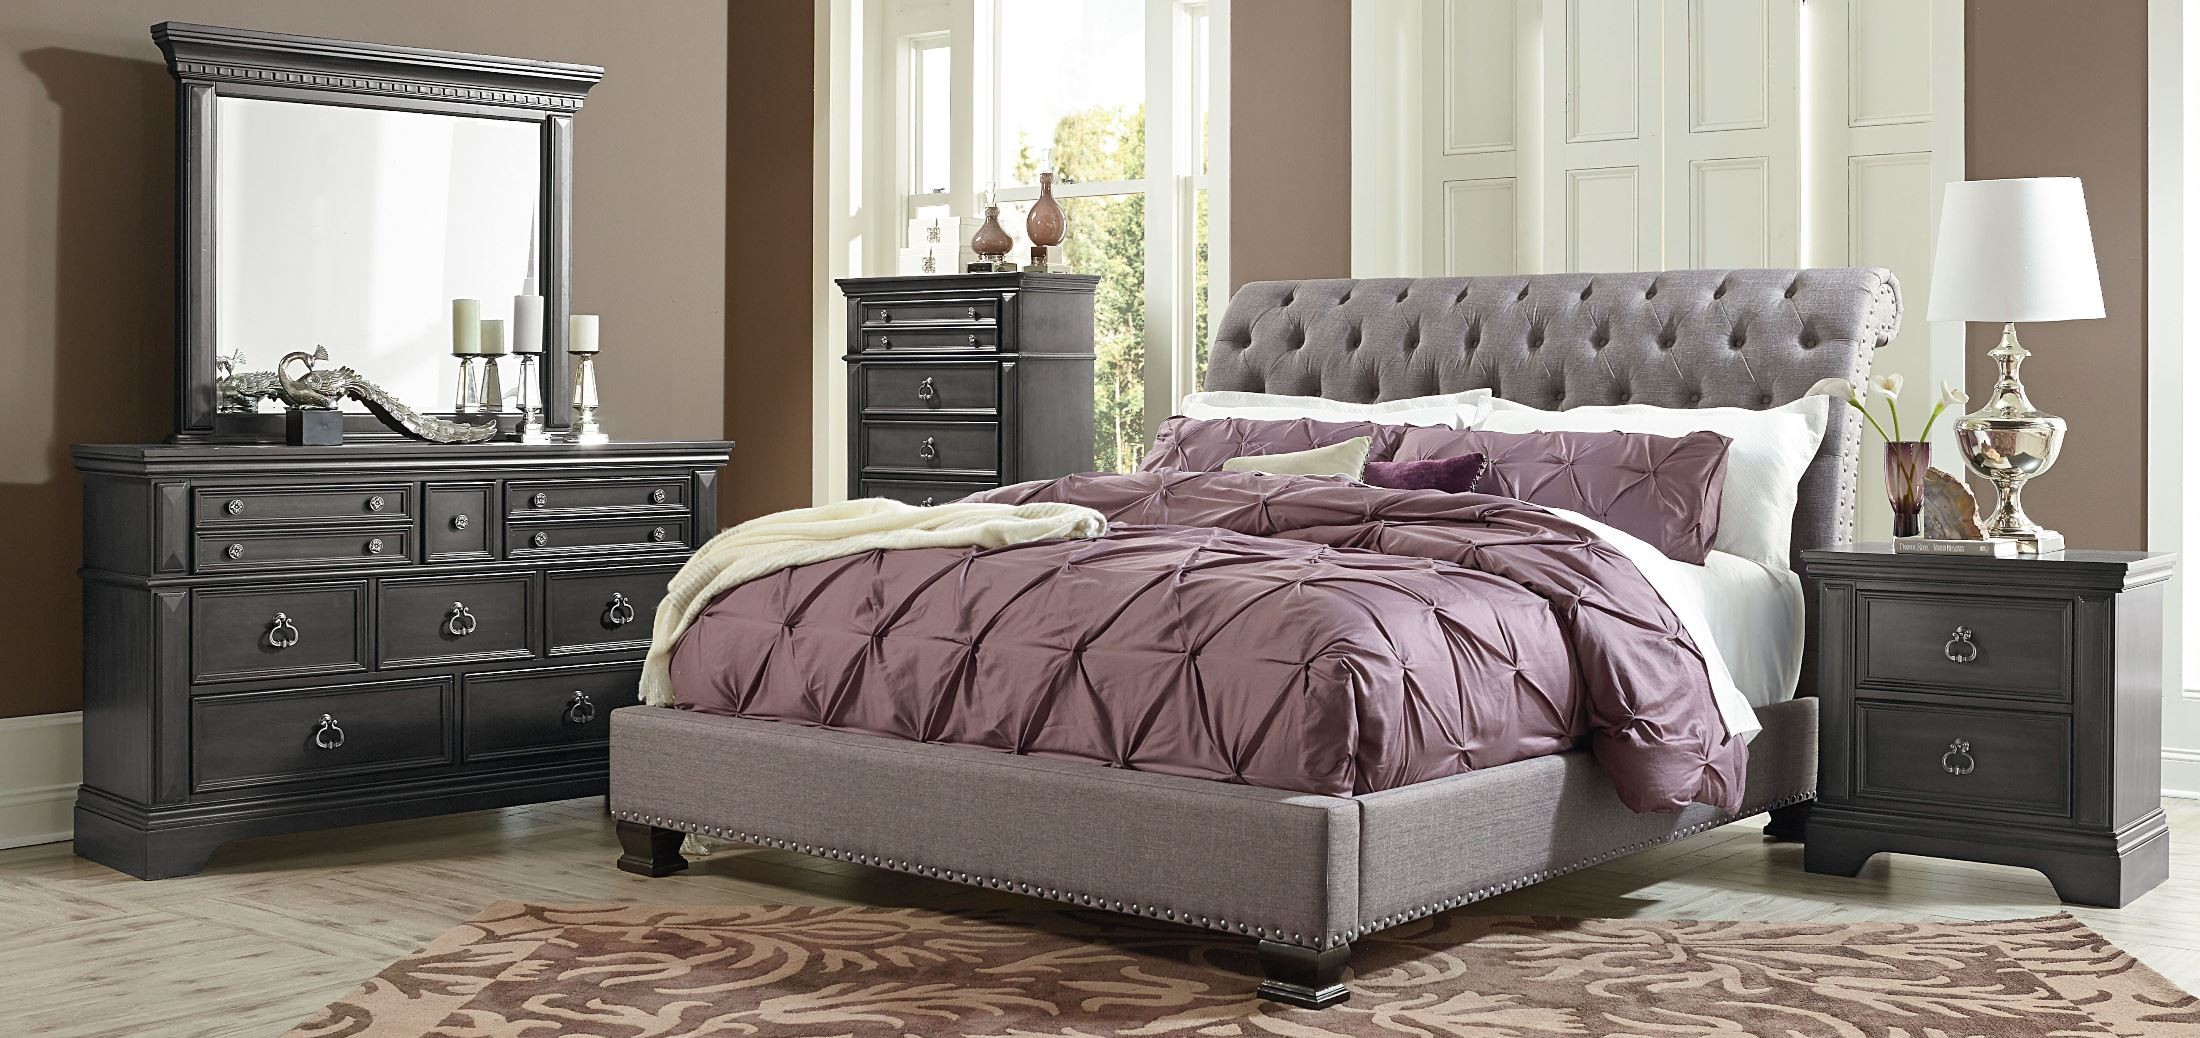 Garrison Soft Grey Upholstered Bedroom Set From Standard